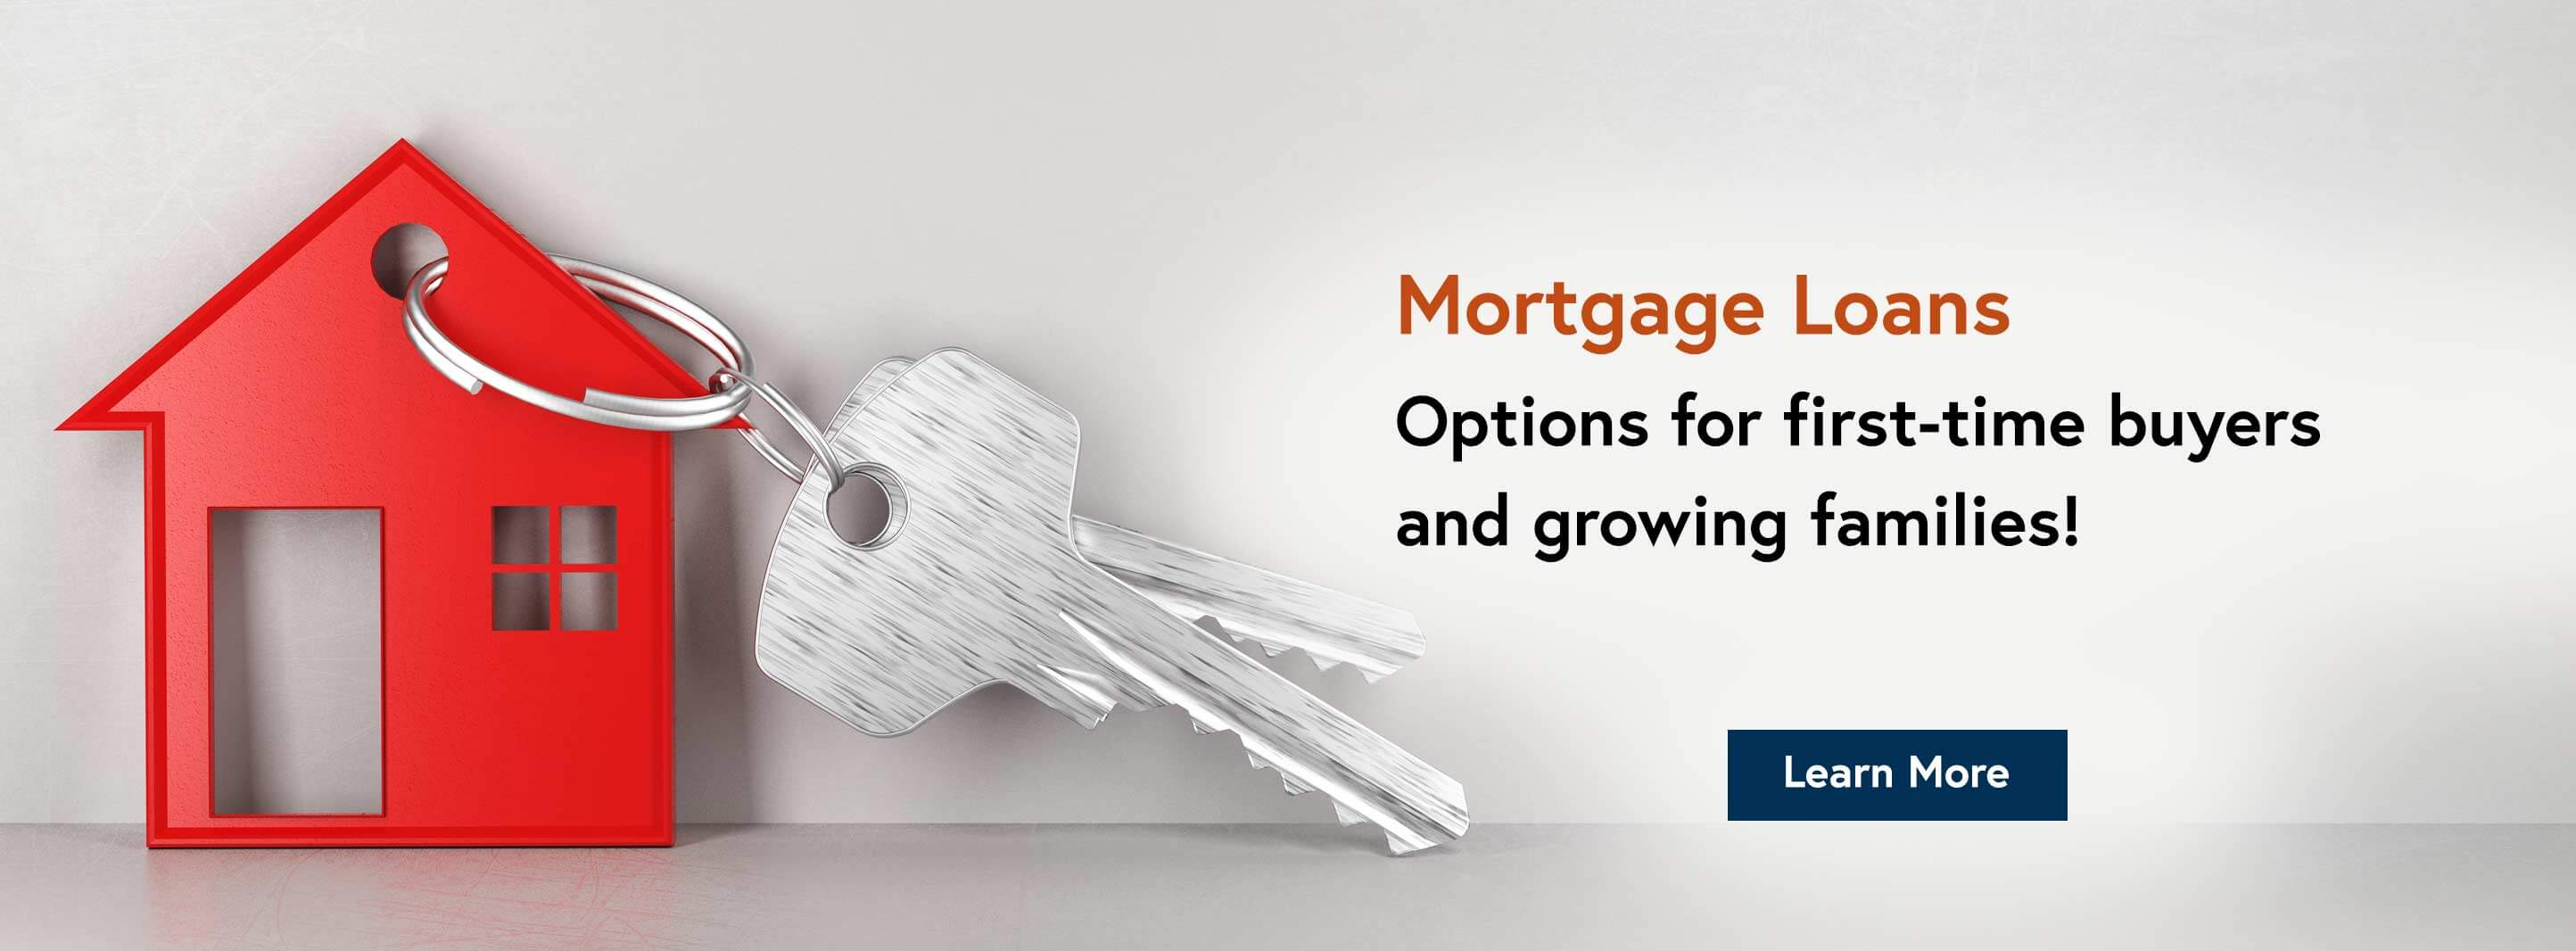 Mortgage Loans. Options for first-time buyers and growing families!